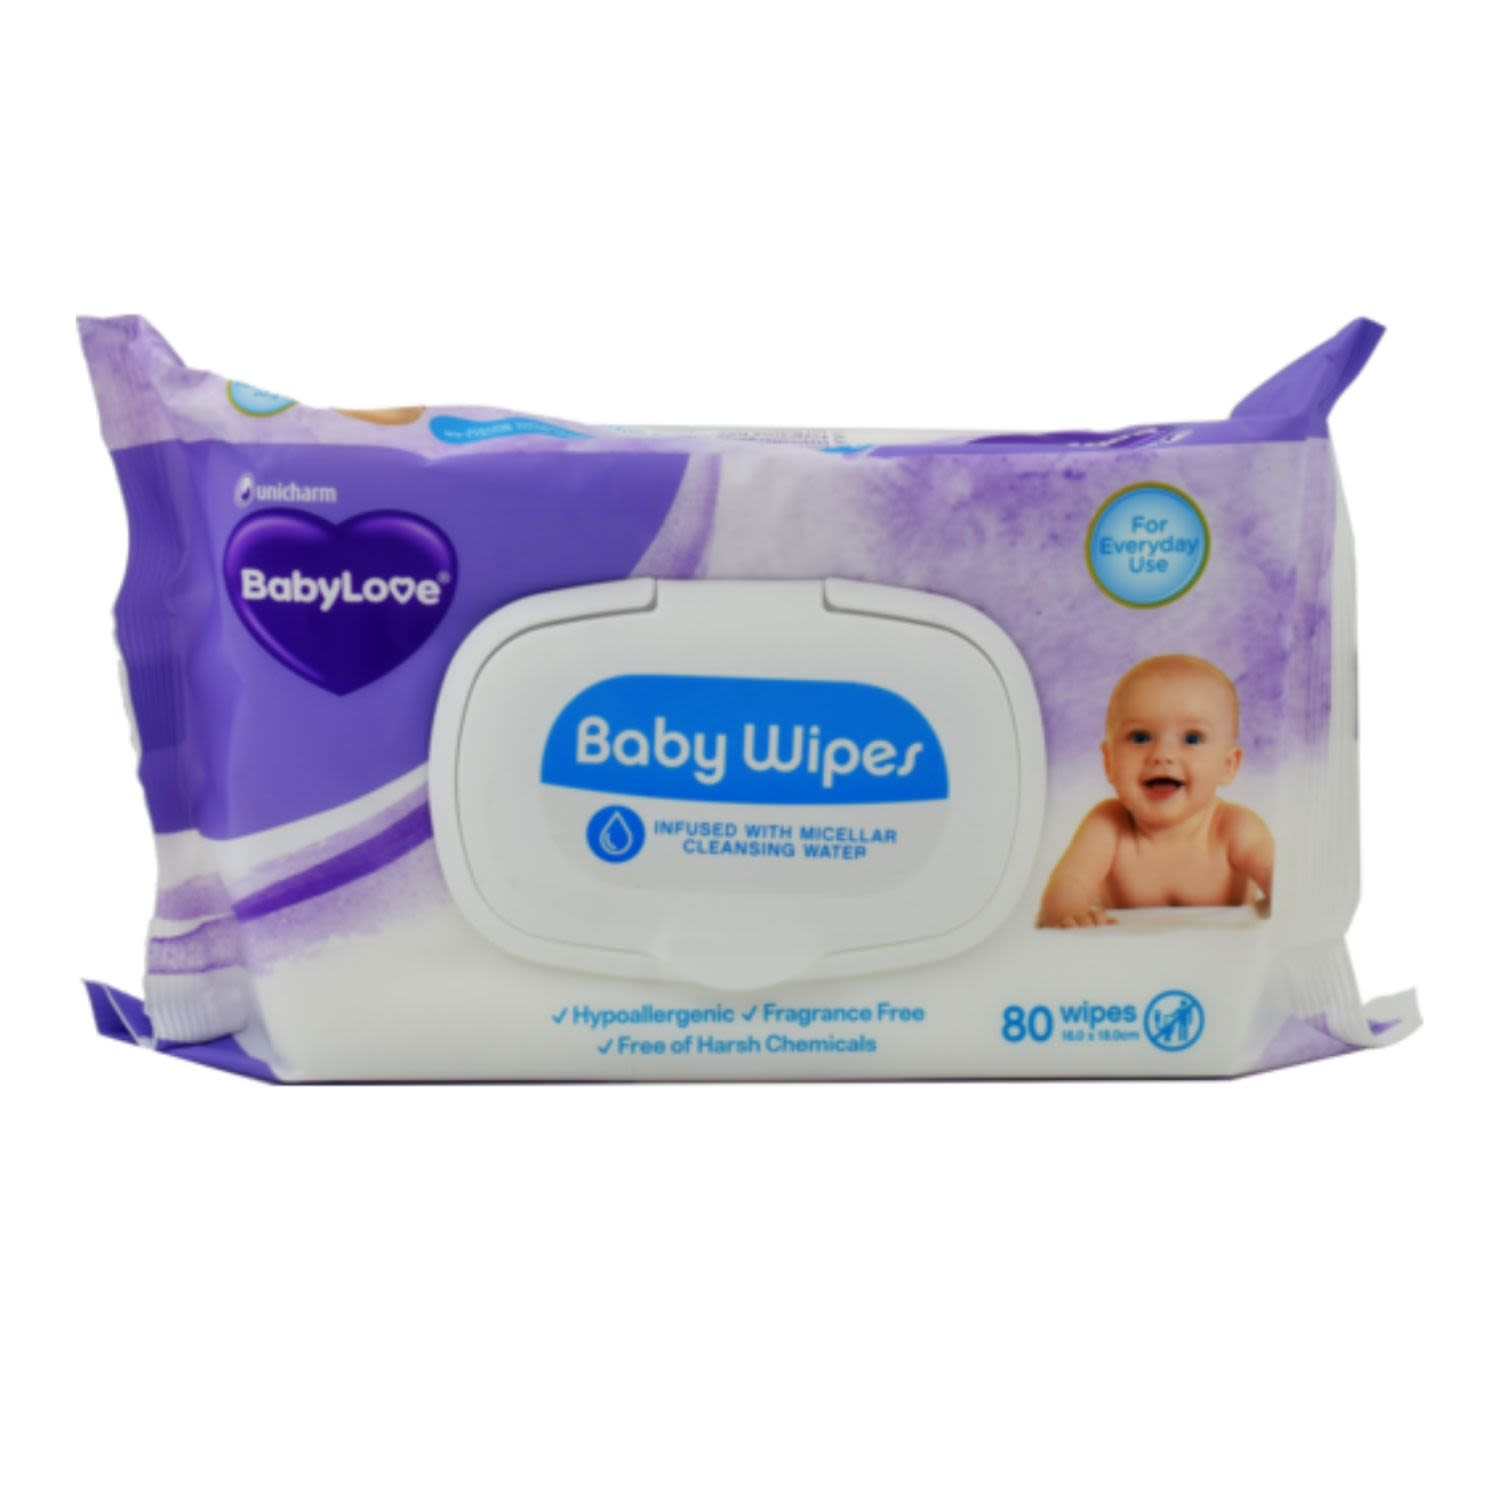 BabyLove Micellar Water Baby Wipes , 80 Each